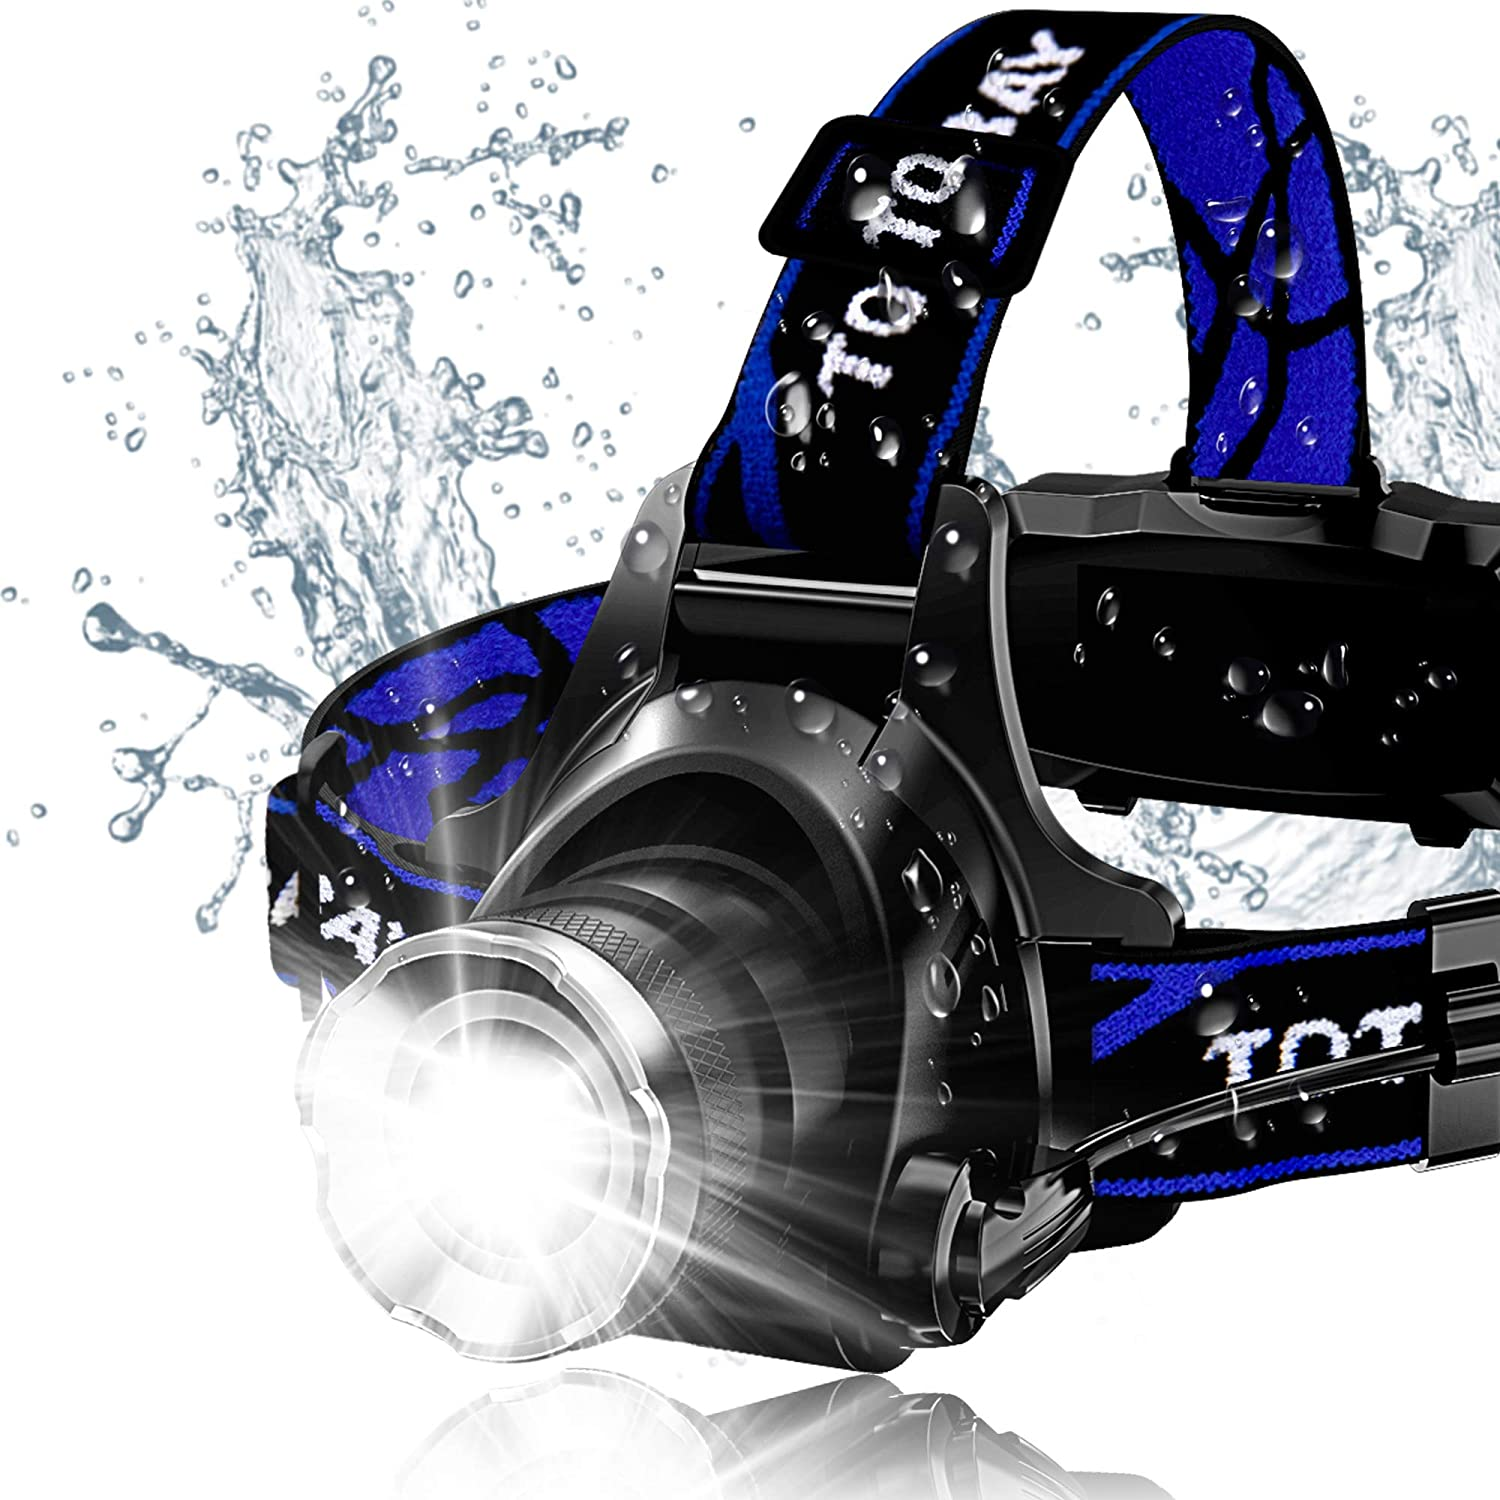 Headlamp, Super Bright LED Headlamps 18650 USB Rechargeable IPX4 Waterproof Flashlight with Zoomable Work Light, Hard Hat Light for Camping, Hiking, Outdoors (Blue): Sports & Outdoors